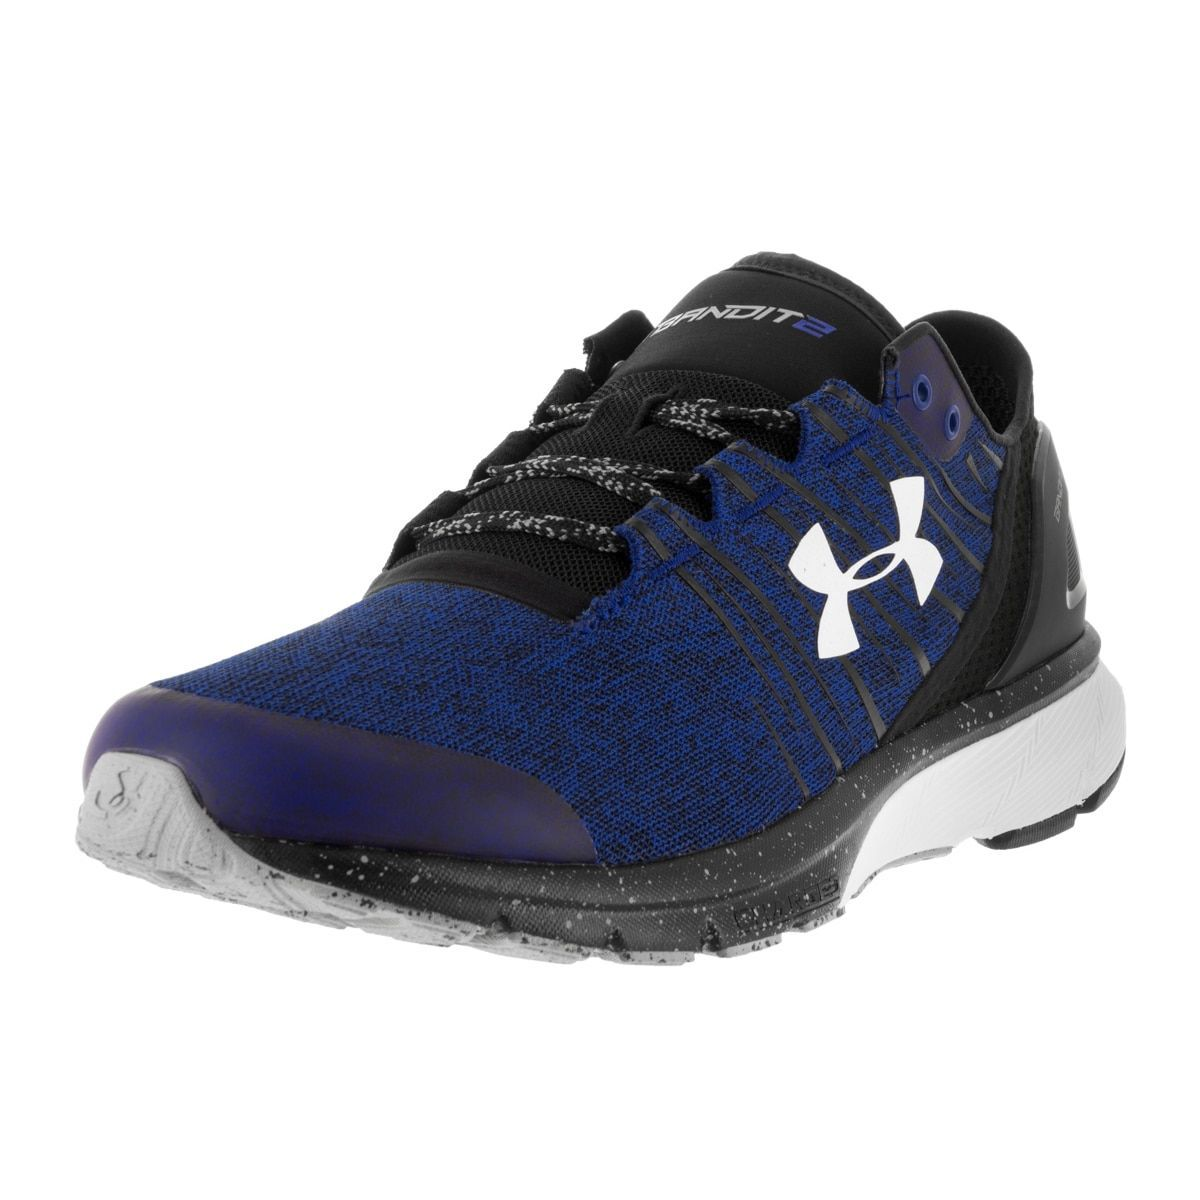 dca462a7c69 Under Armour Men s UA Team Charged Bandit 2 Try Blk Wht Running Shoe ...